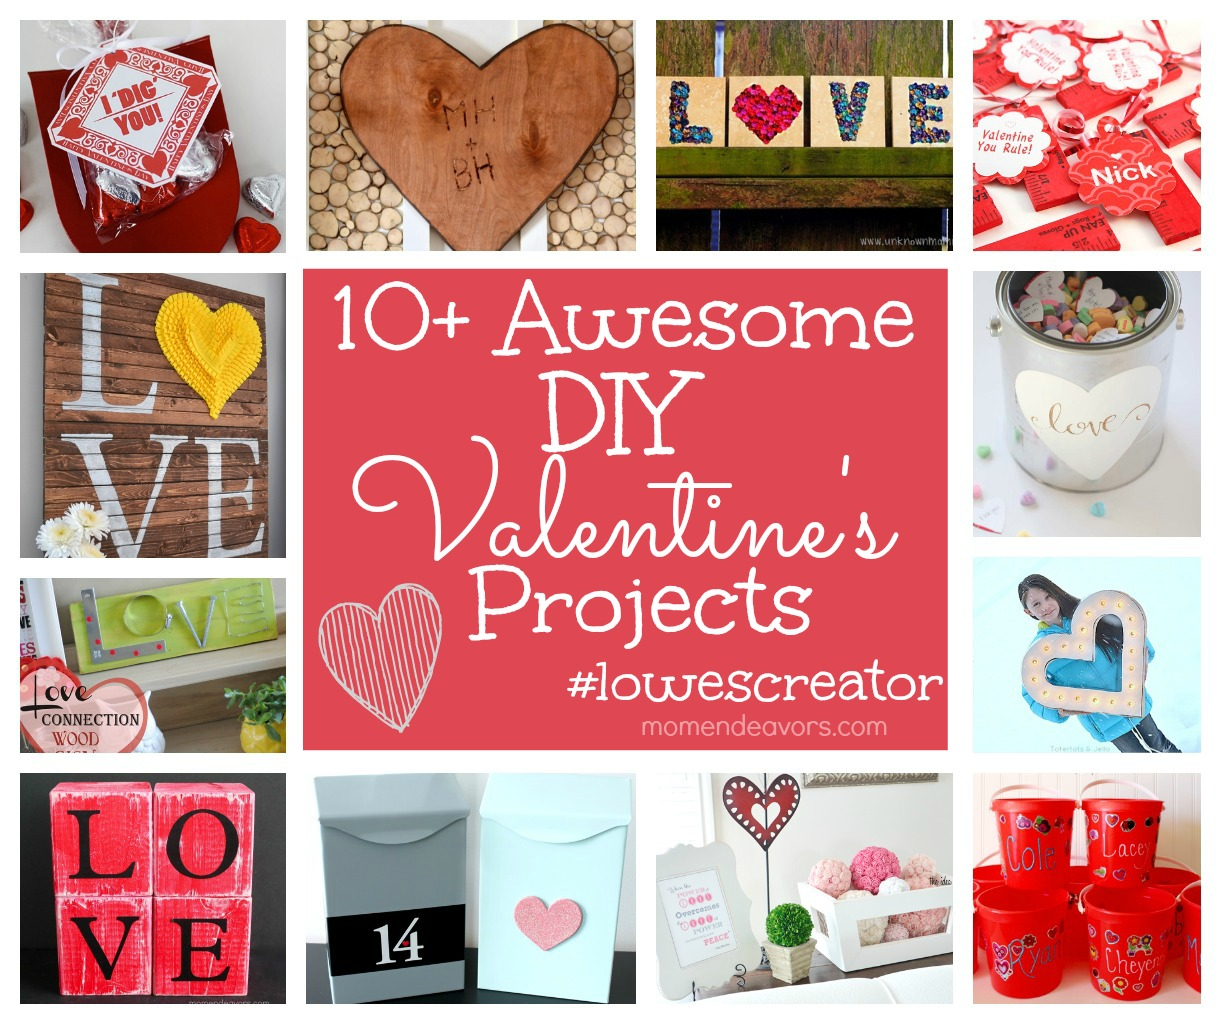 Diy Valentine S Projects Lowescreator